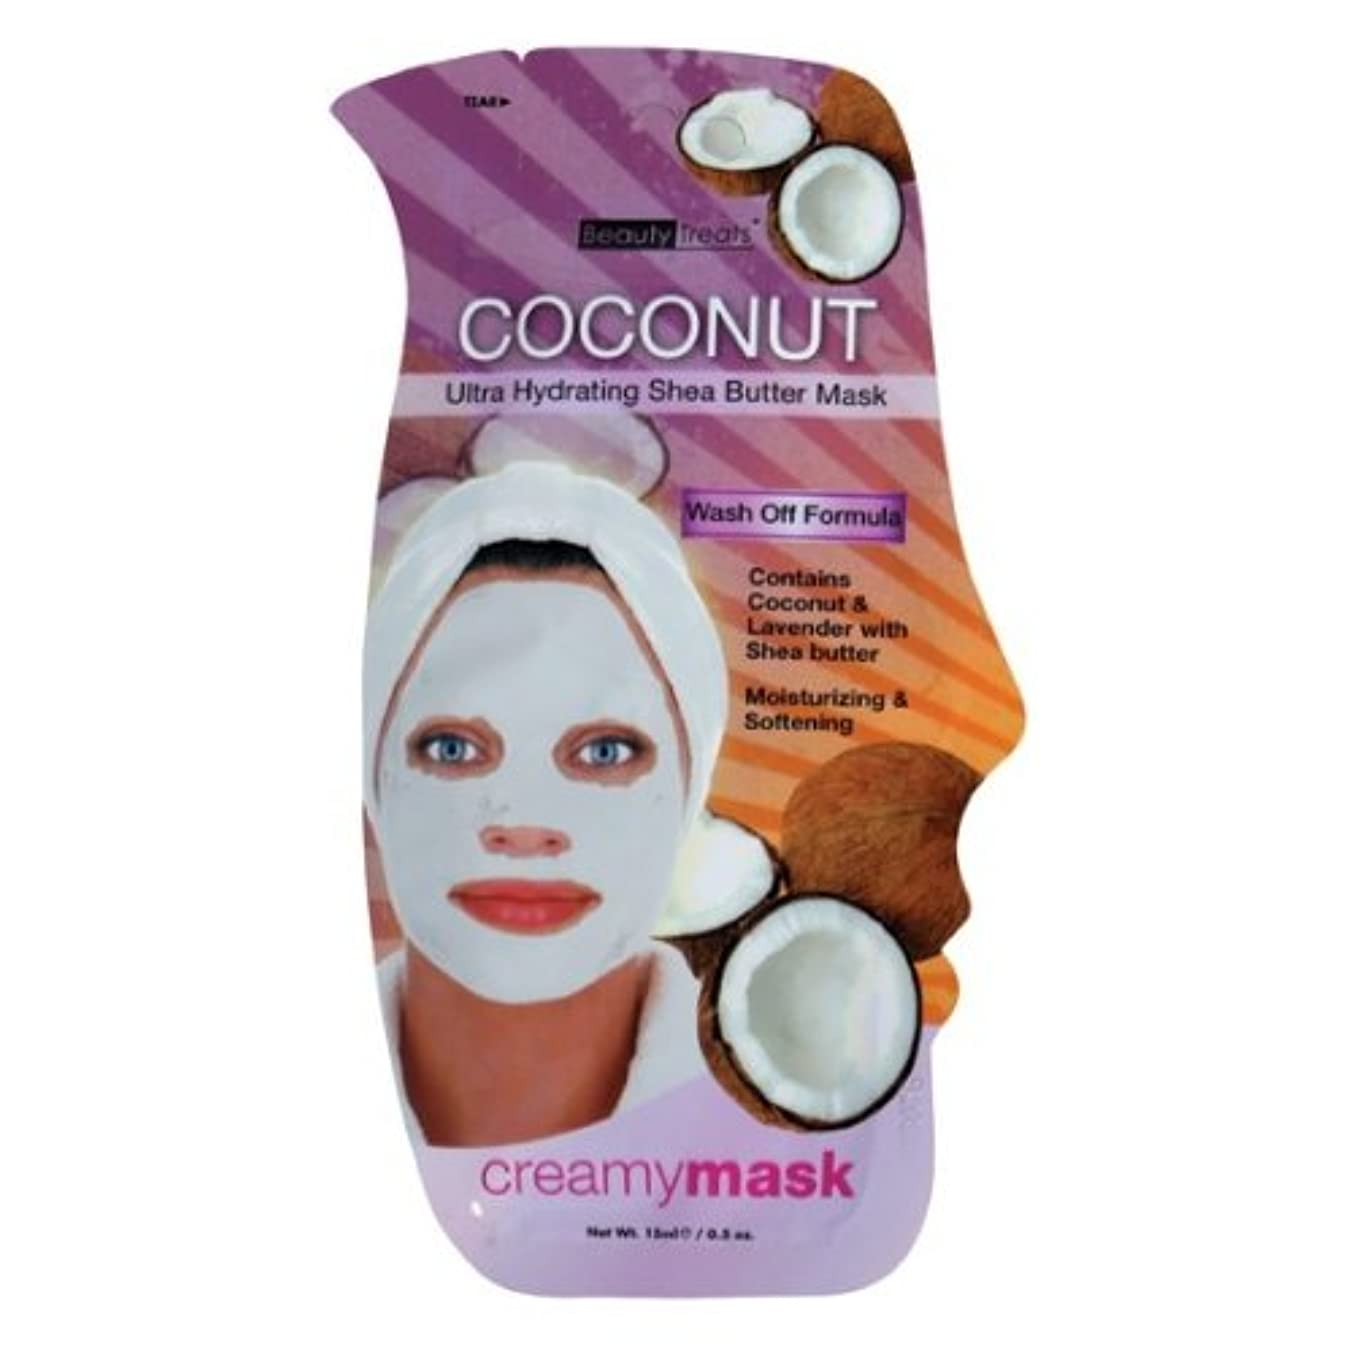 破産検出可能受け入れるBEAUTY TREATS Coconut Ultra Hydrating Shea Butter Mask - Coconut (並行輸入品)